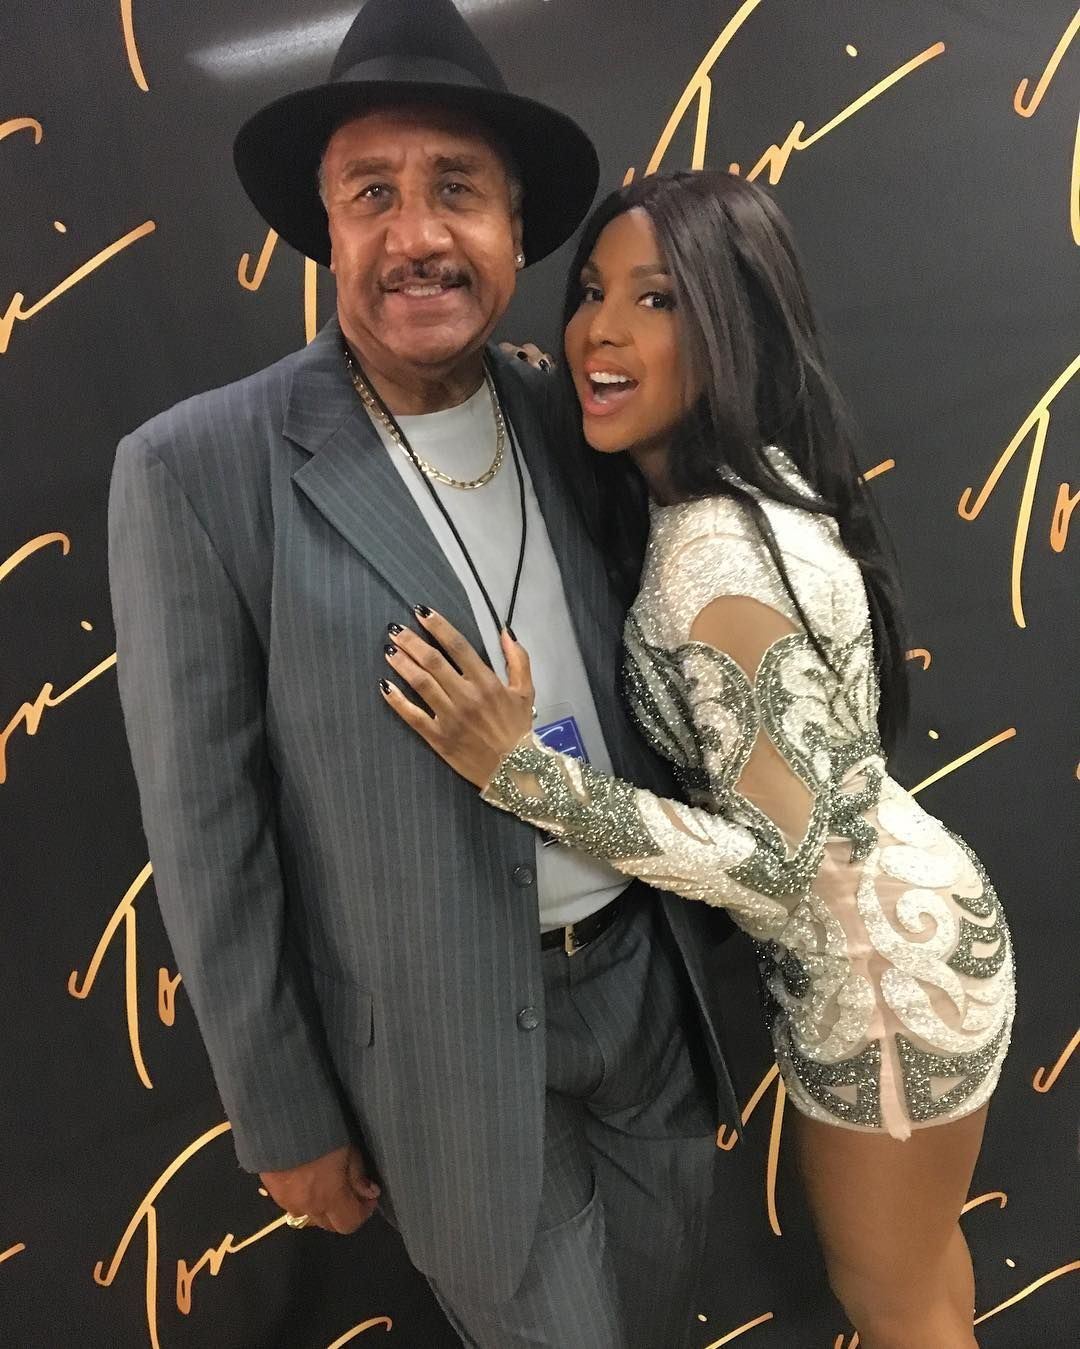 Toni Braxton - My dad came to see me last night in Atlantic City!!! #DaddysGirl ❤️